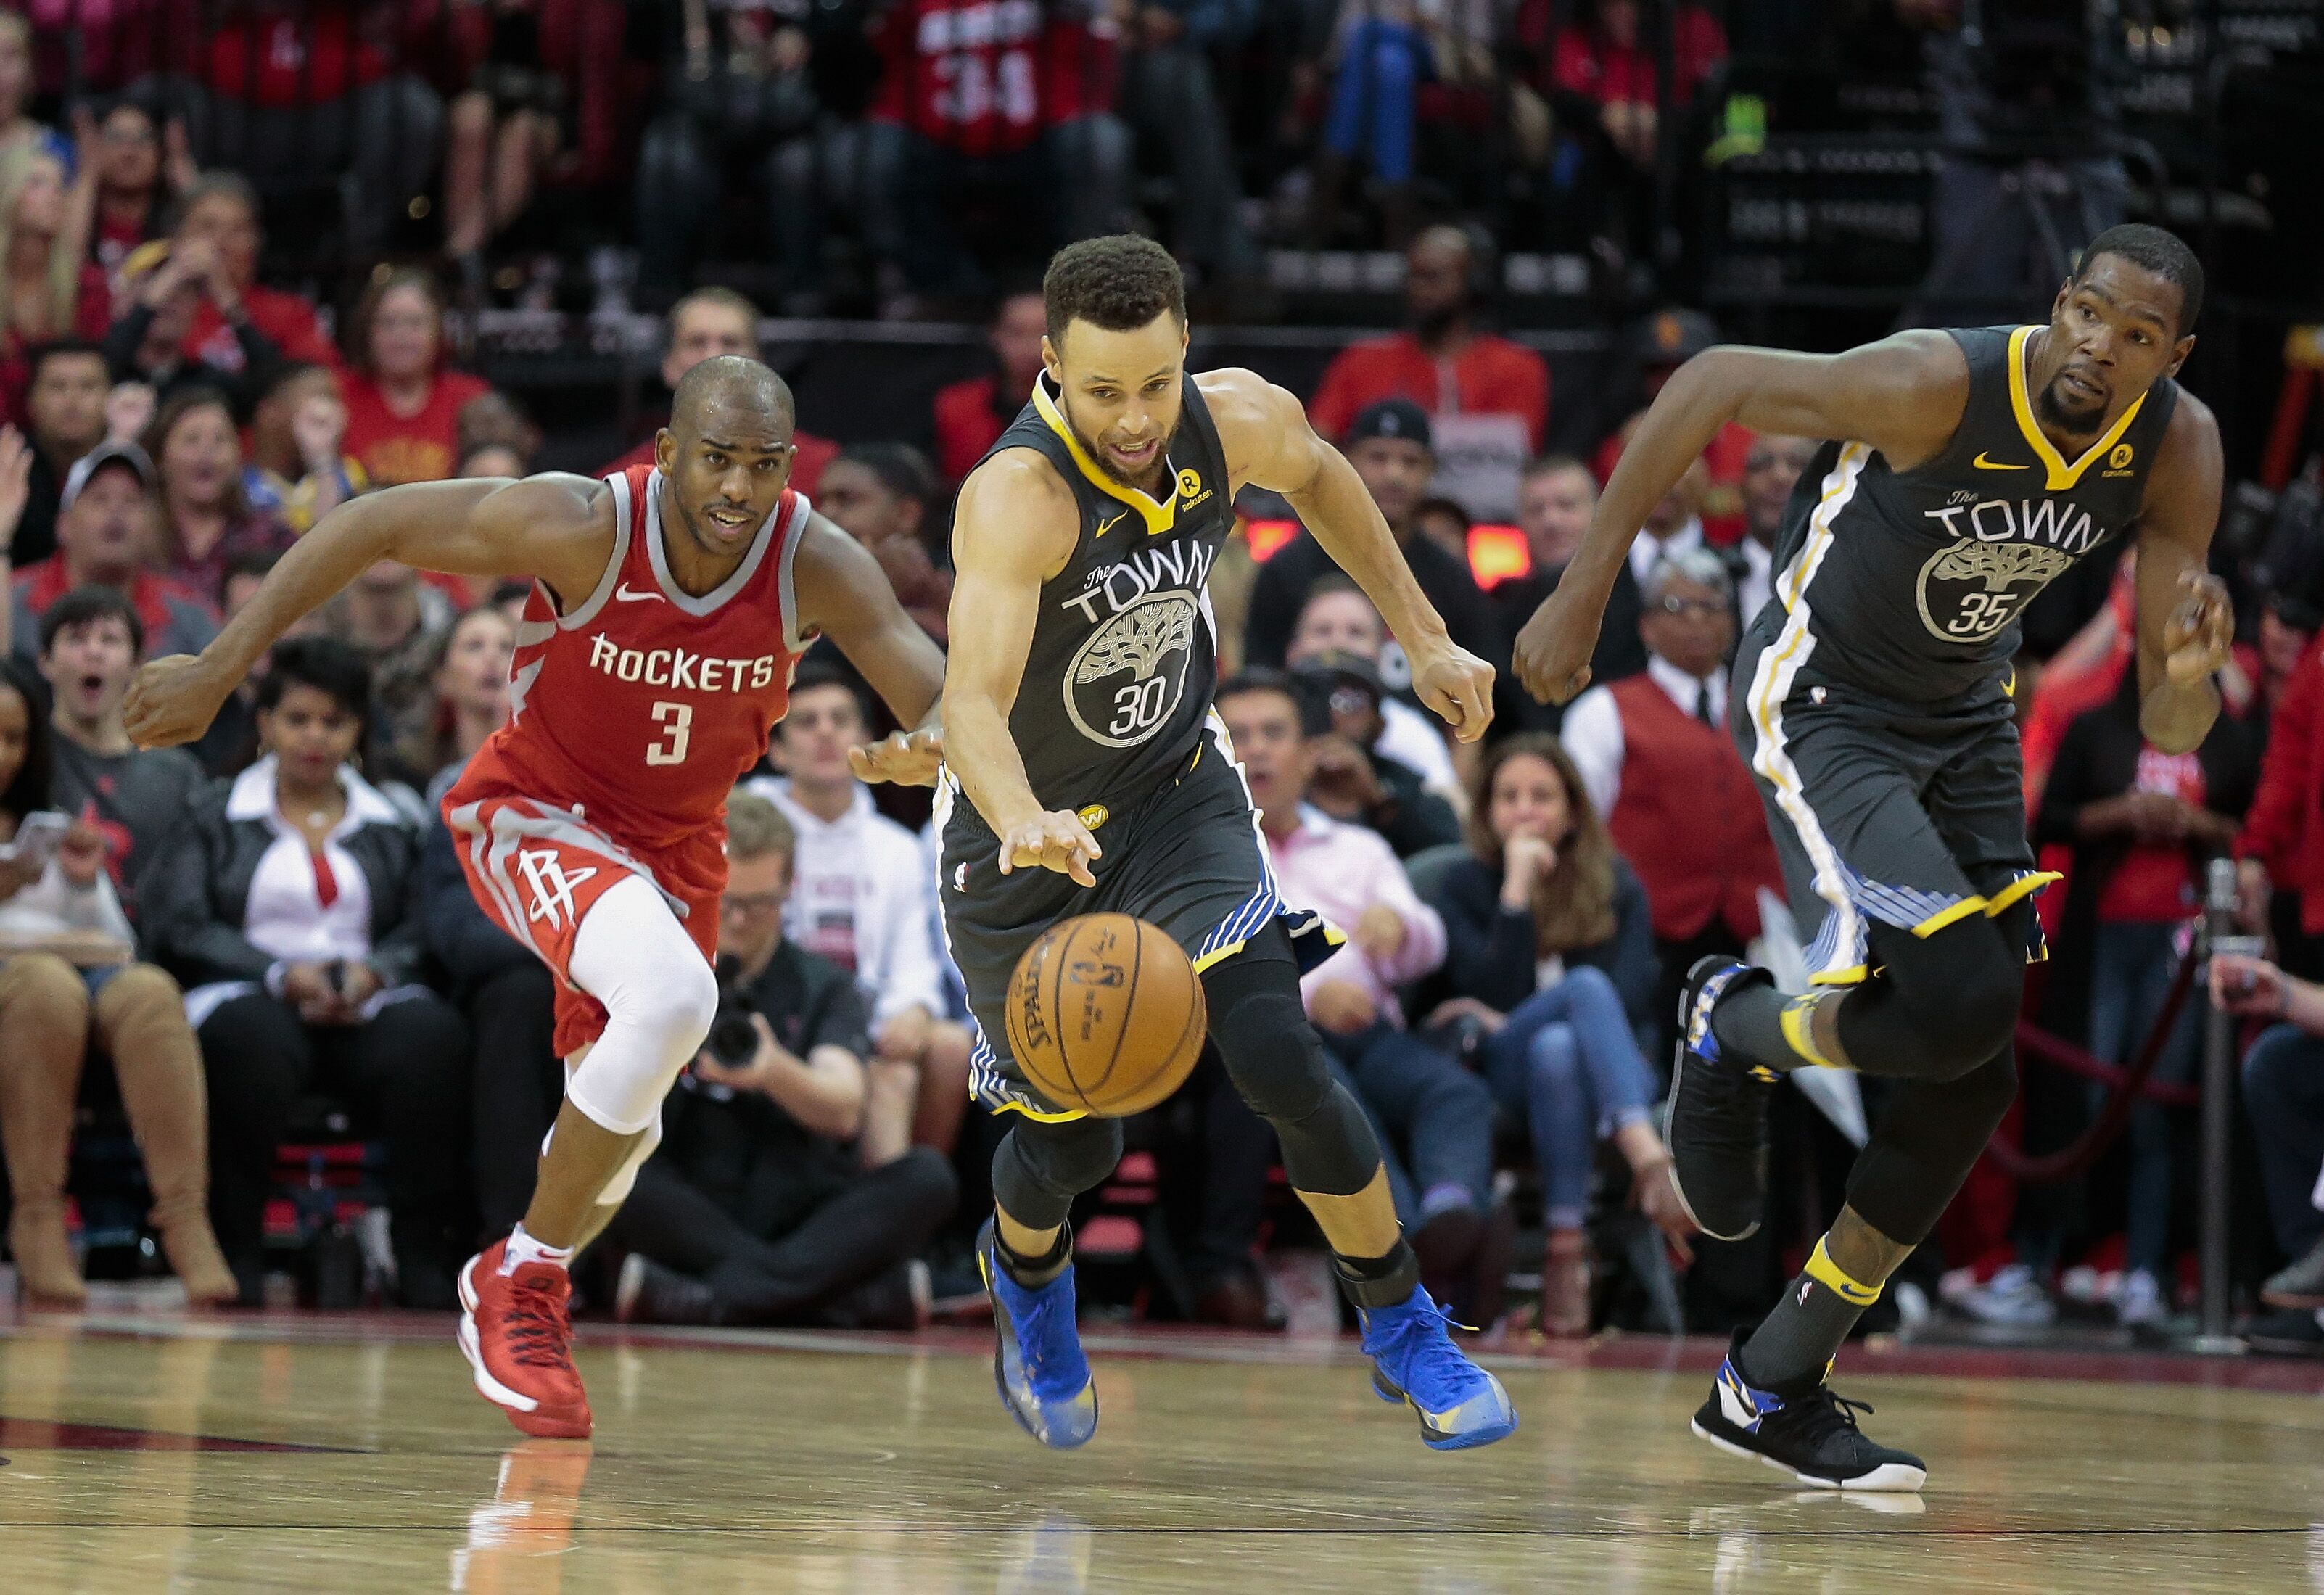 908132274-golden-state-warriors-v-houston-rockets.jpg